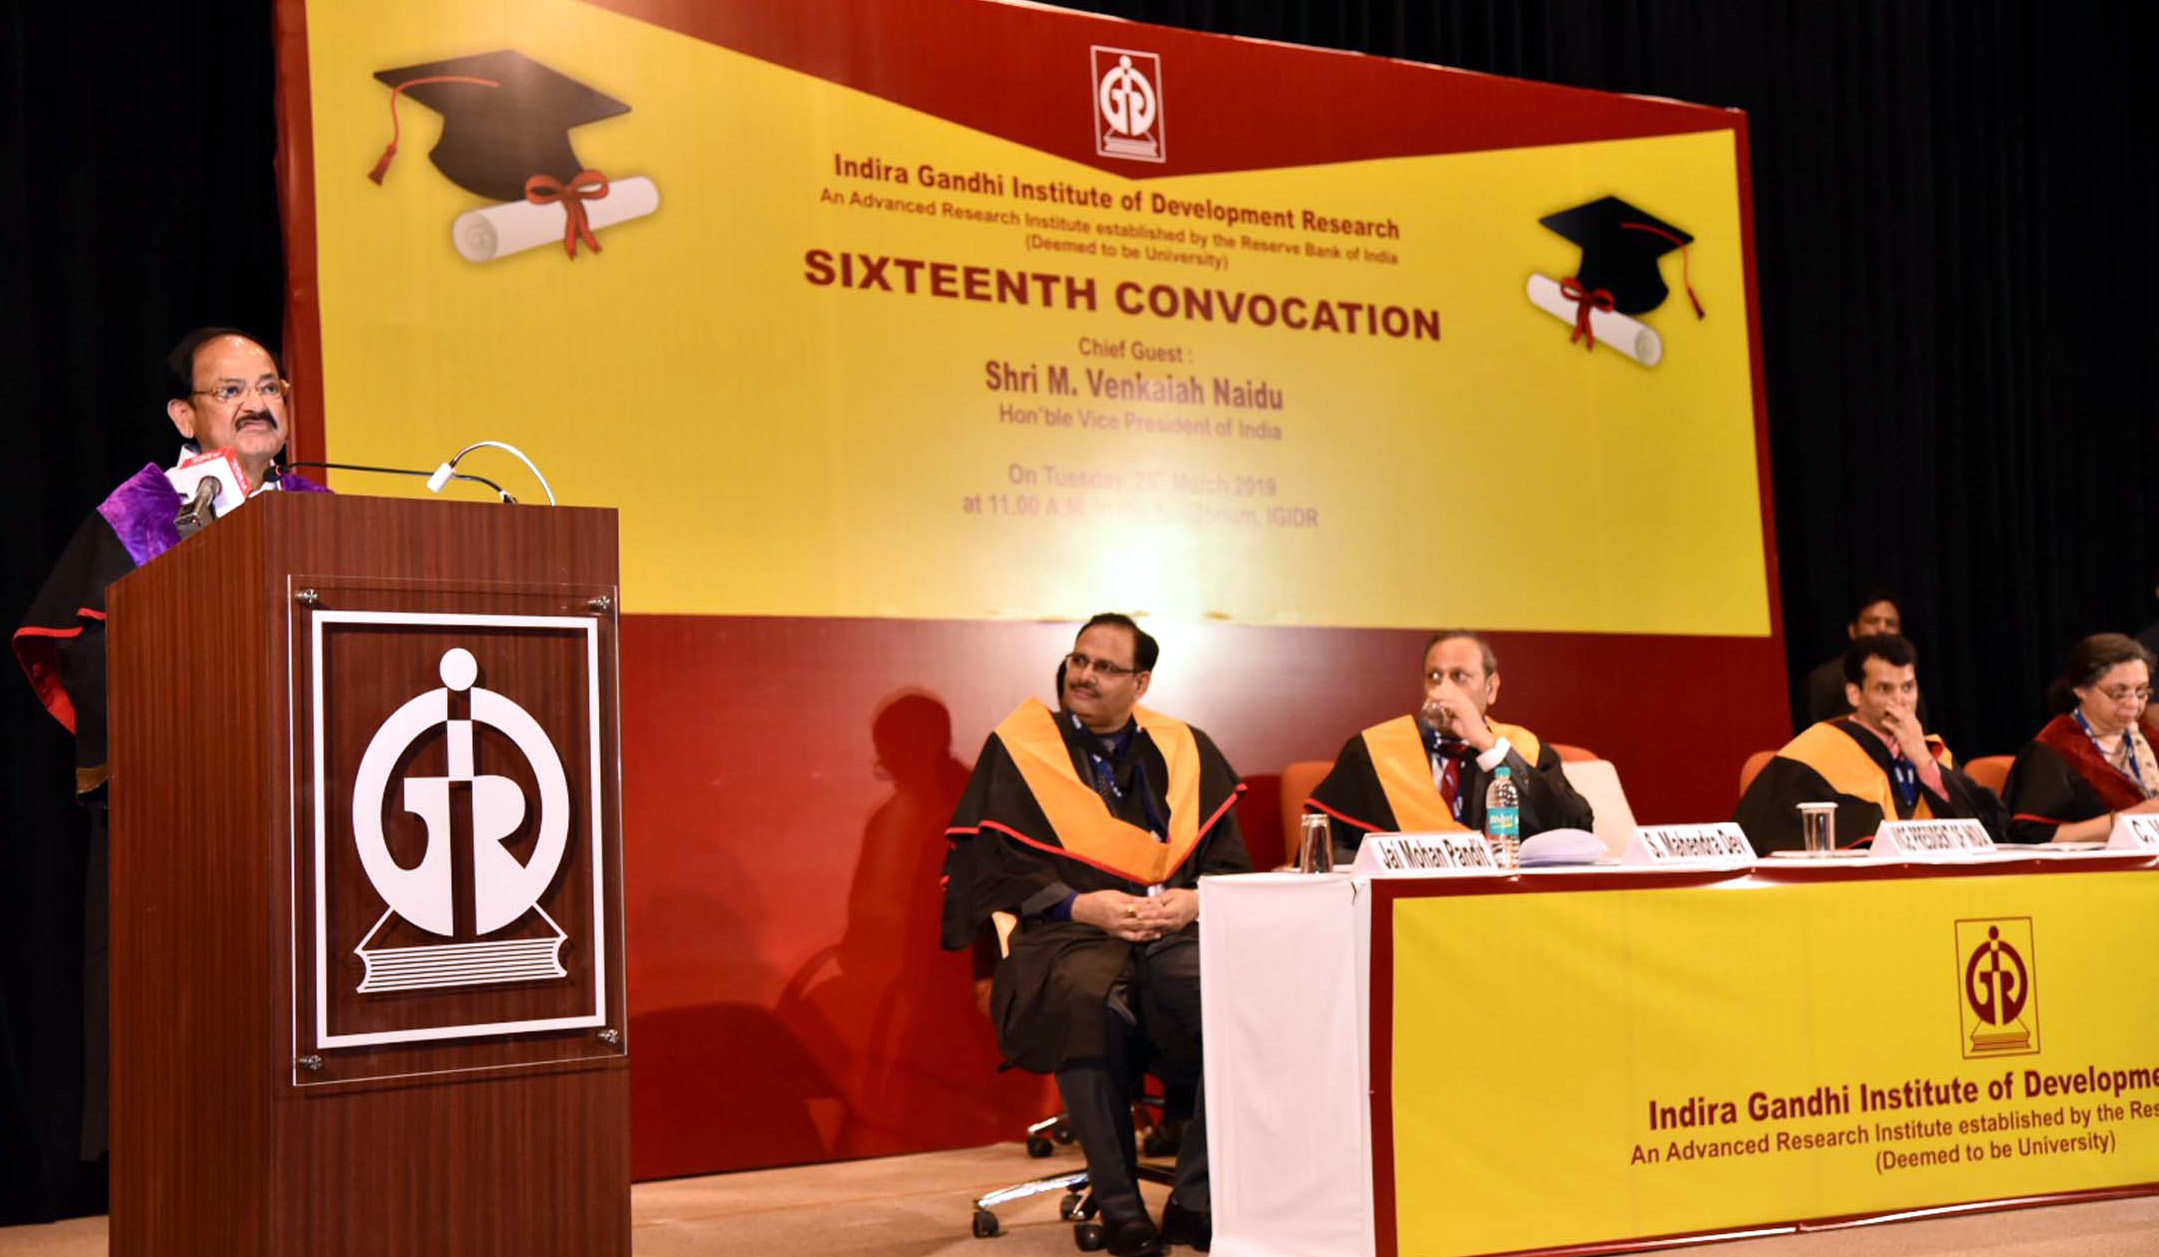 Shri M. Venkaiah Naidu  Addresses 16th Convocation of Indira Gandhi Institute of Development Research